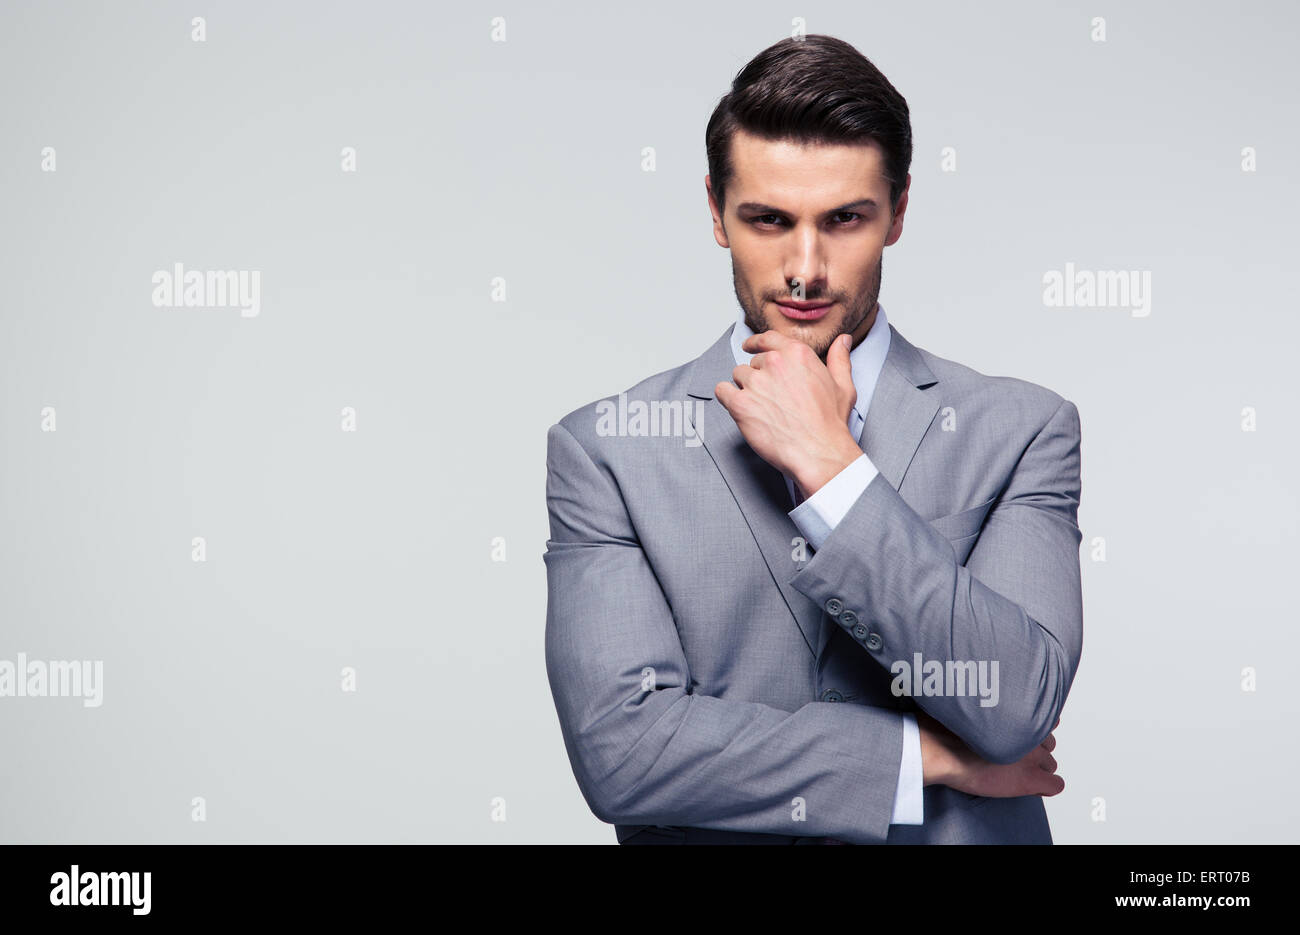 Portrait of a pensive businessman touching his chin over gray background - Stock Image